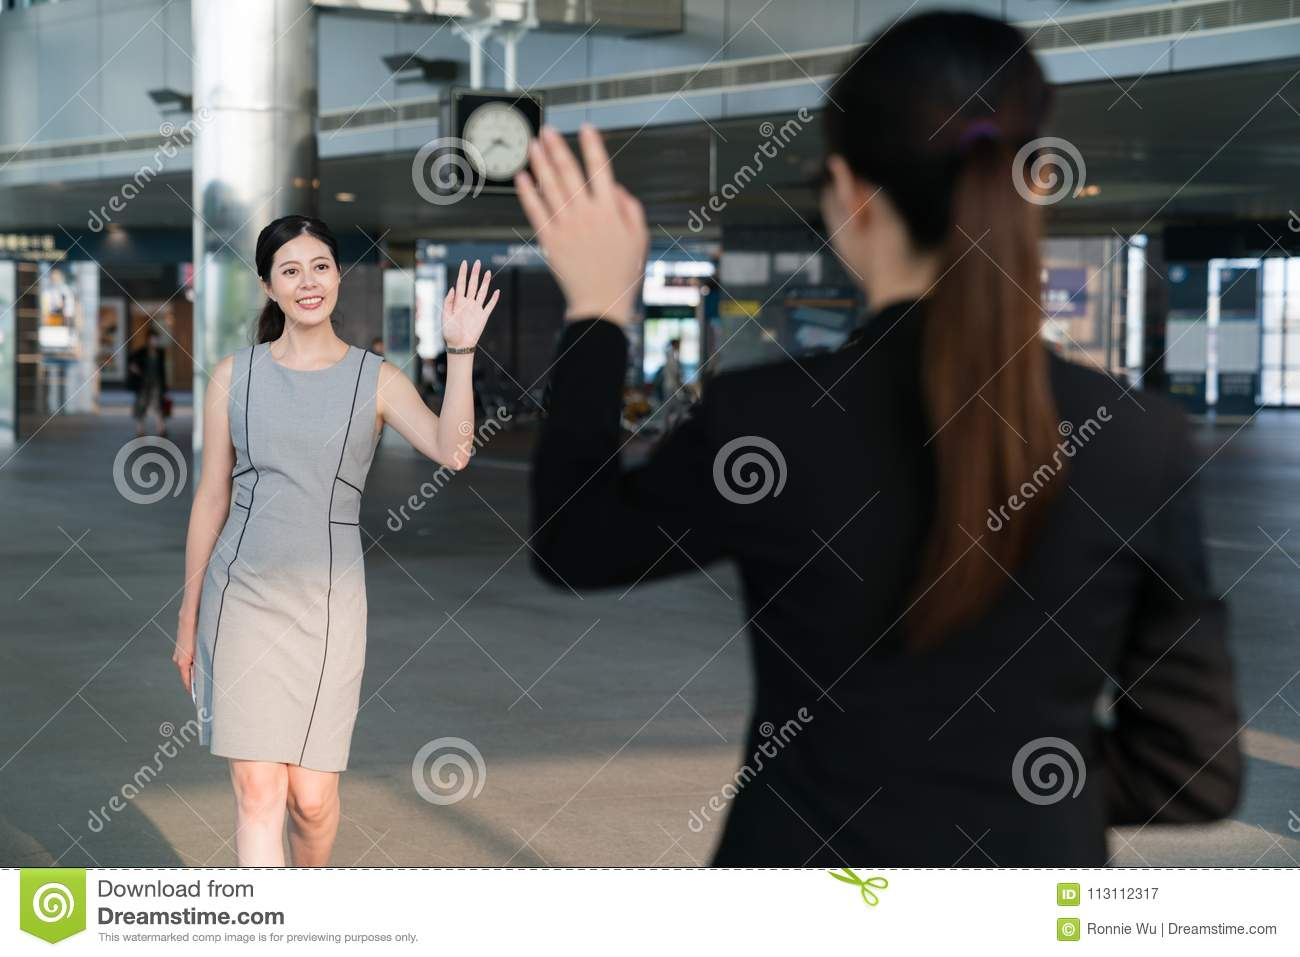 Businesswomen greeting each other stock image image of korean download businesswomen greeting each other stock image image of korean japanese 113112317 m4hsunfo